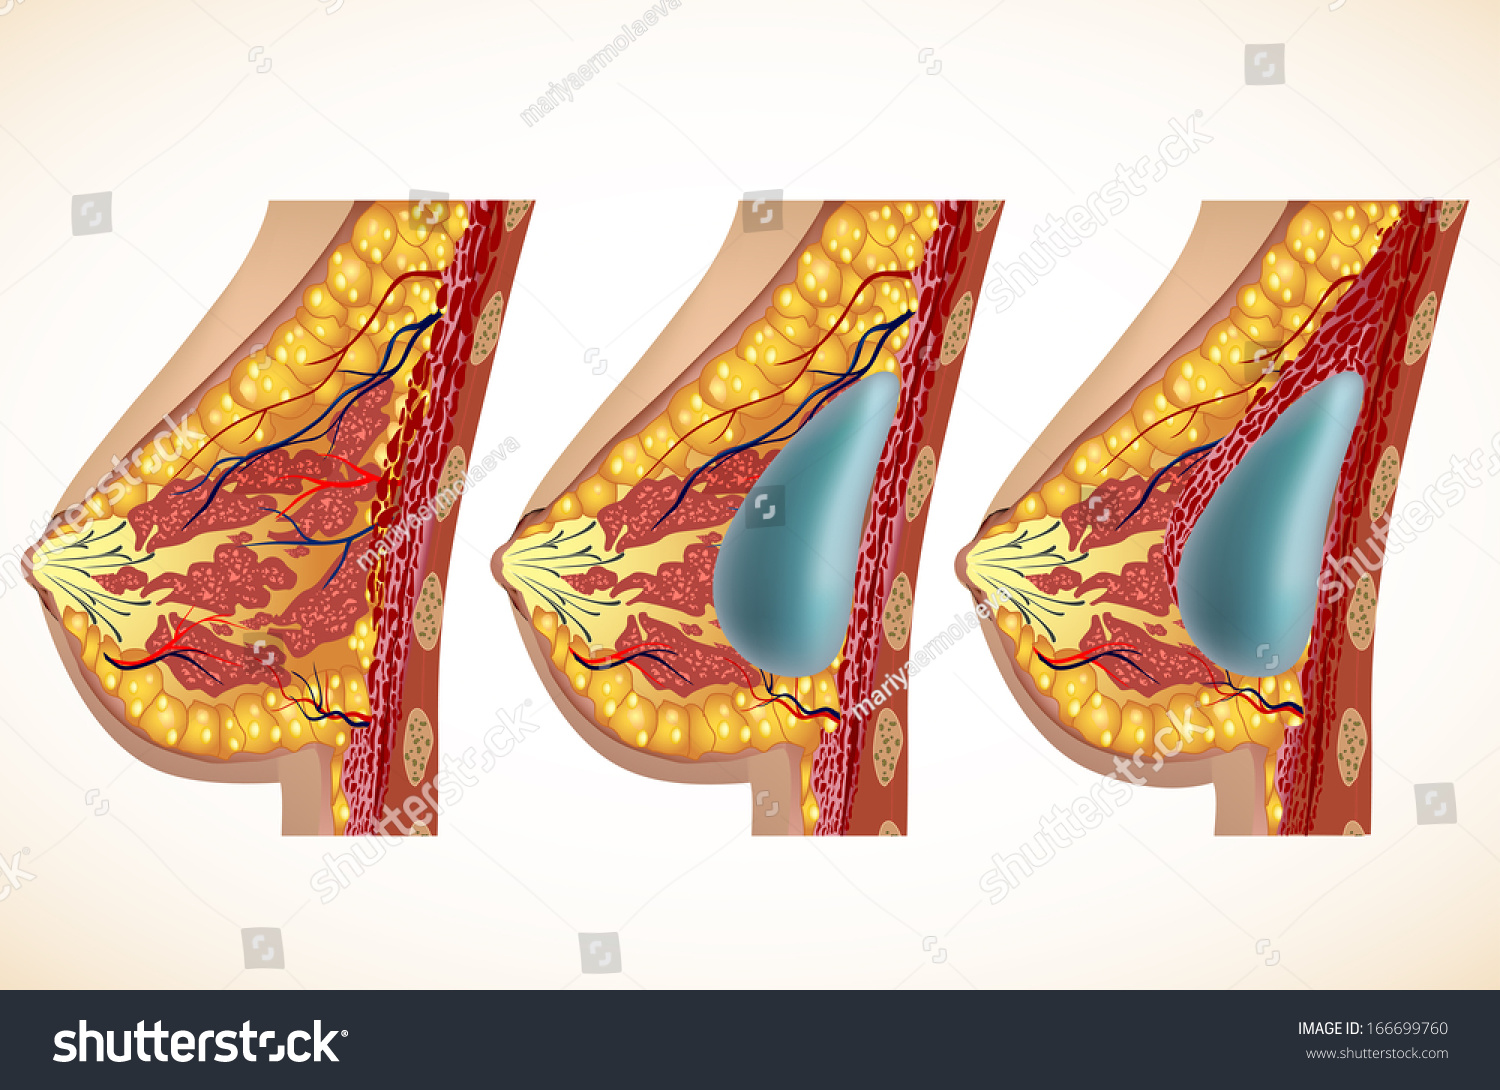 Anatomy Breast Implants Stock Illustration 166699760 - Shutterstock